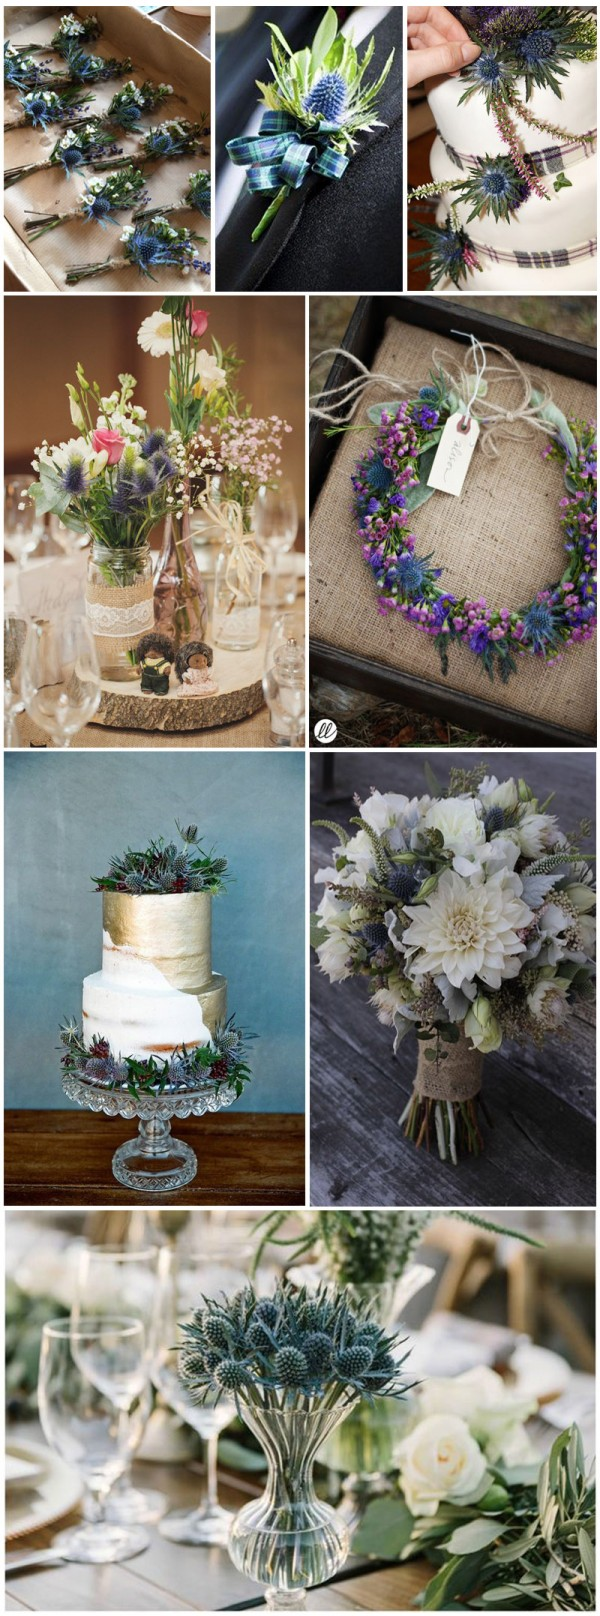 Thistle-themed wedding cake and decor ideas